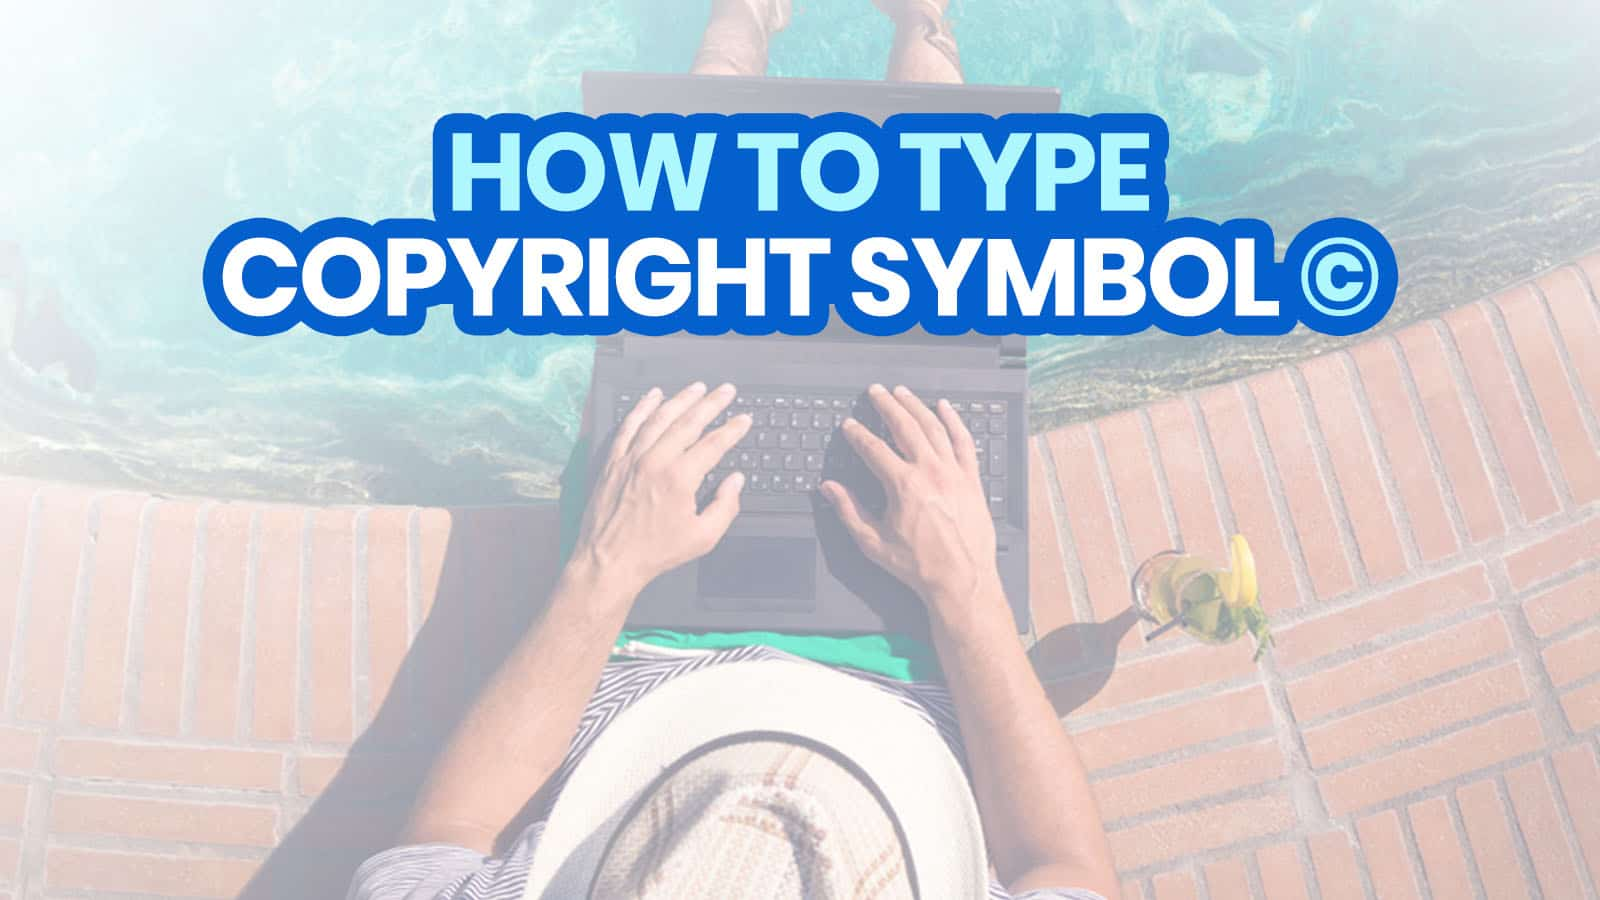 HOW TO TYPE COPYRIGHT SYMBOL © on iPhone, Android, Word & Computer (with Keyboard Shortcuts)